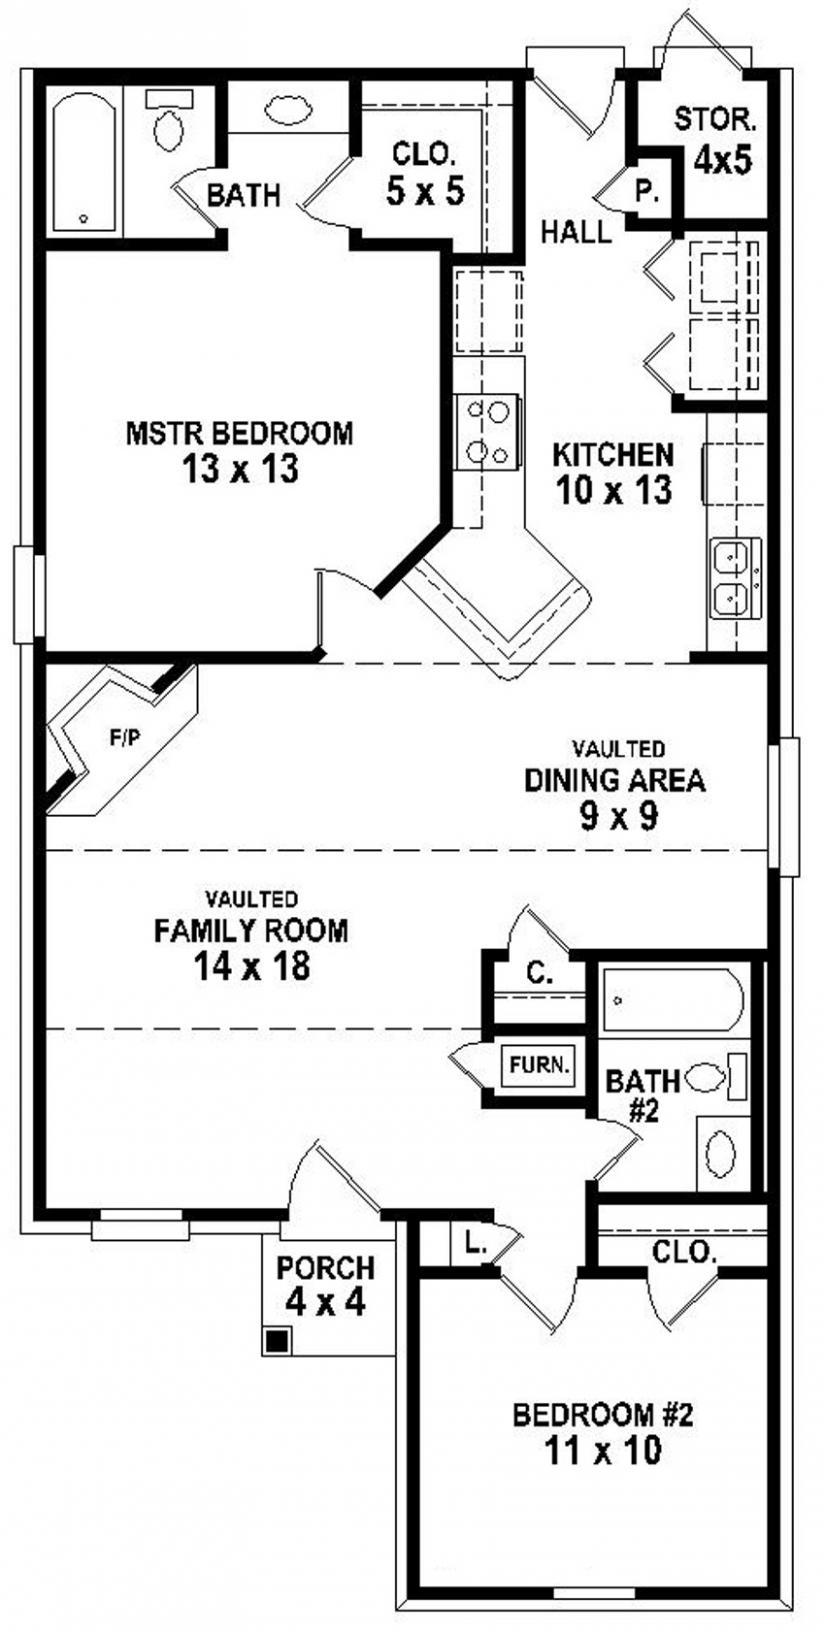 Simple 2 Bedroom House Floor Plans Small Two Bedroom House Plans